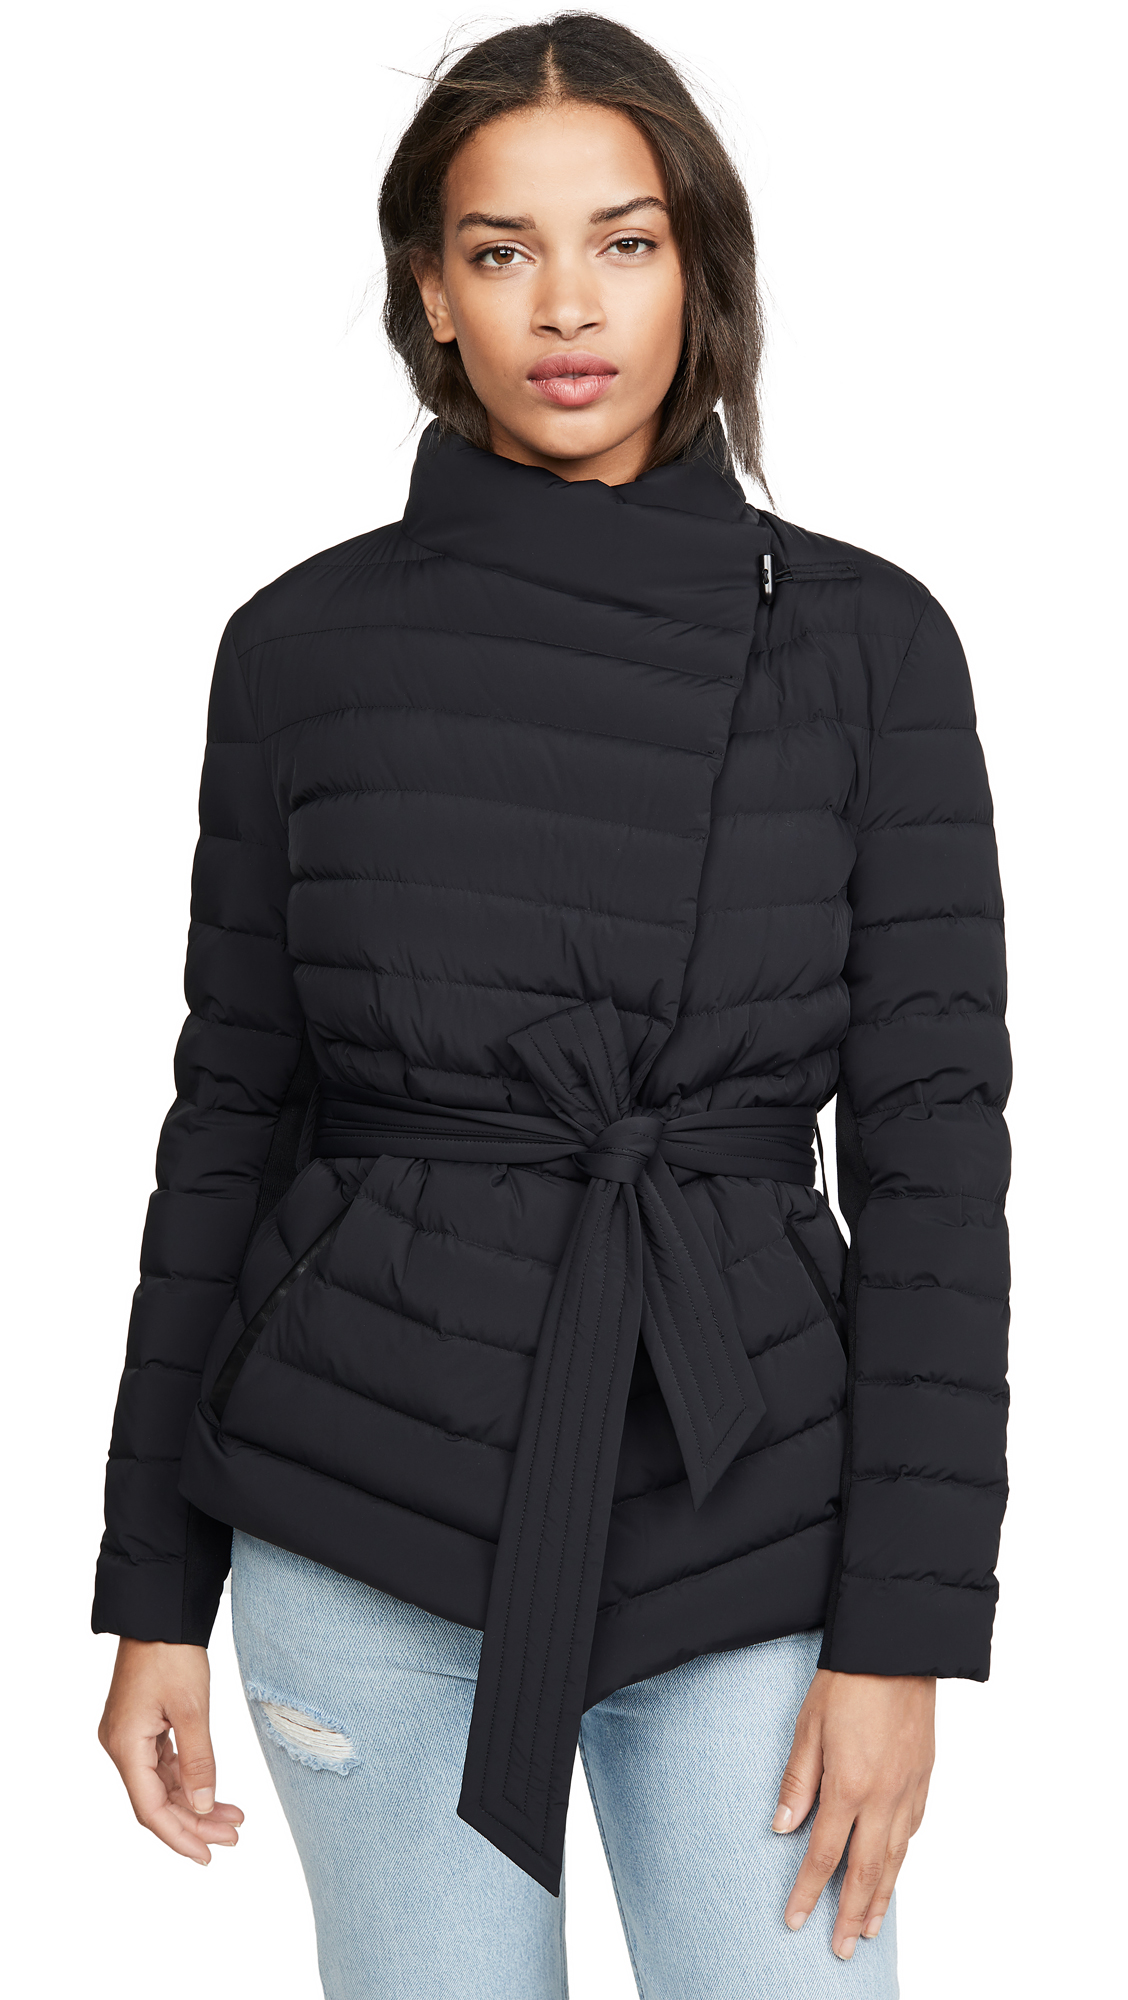 Buy Mackage Gretta Lightweight Down Jacket online beautiful Mackage Jackets, Coats, Down Jackets